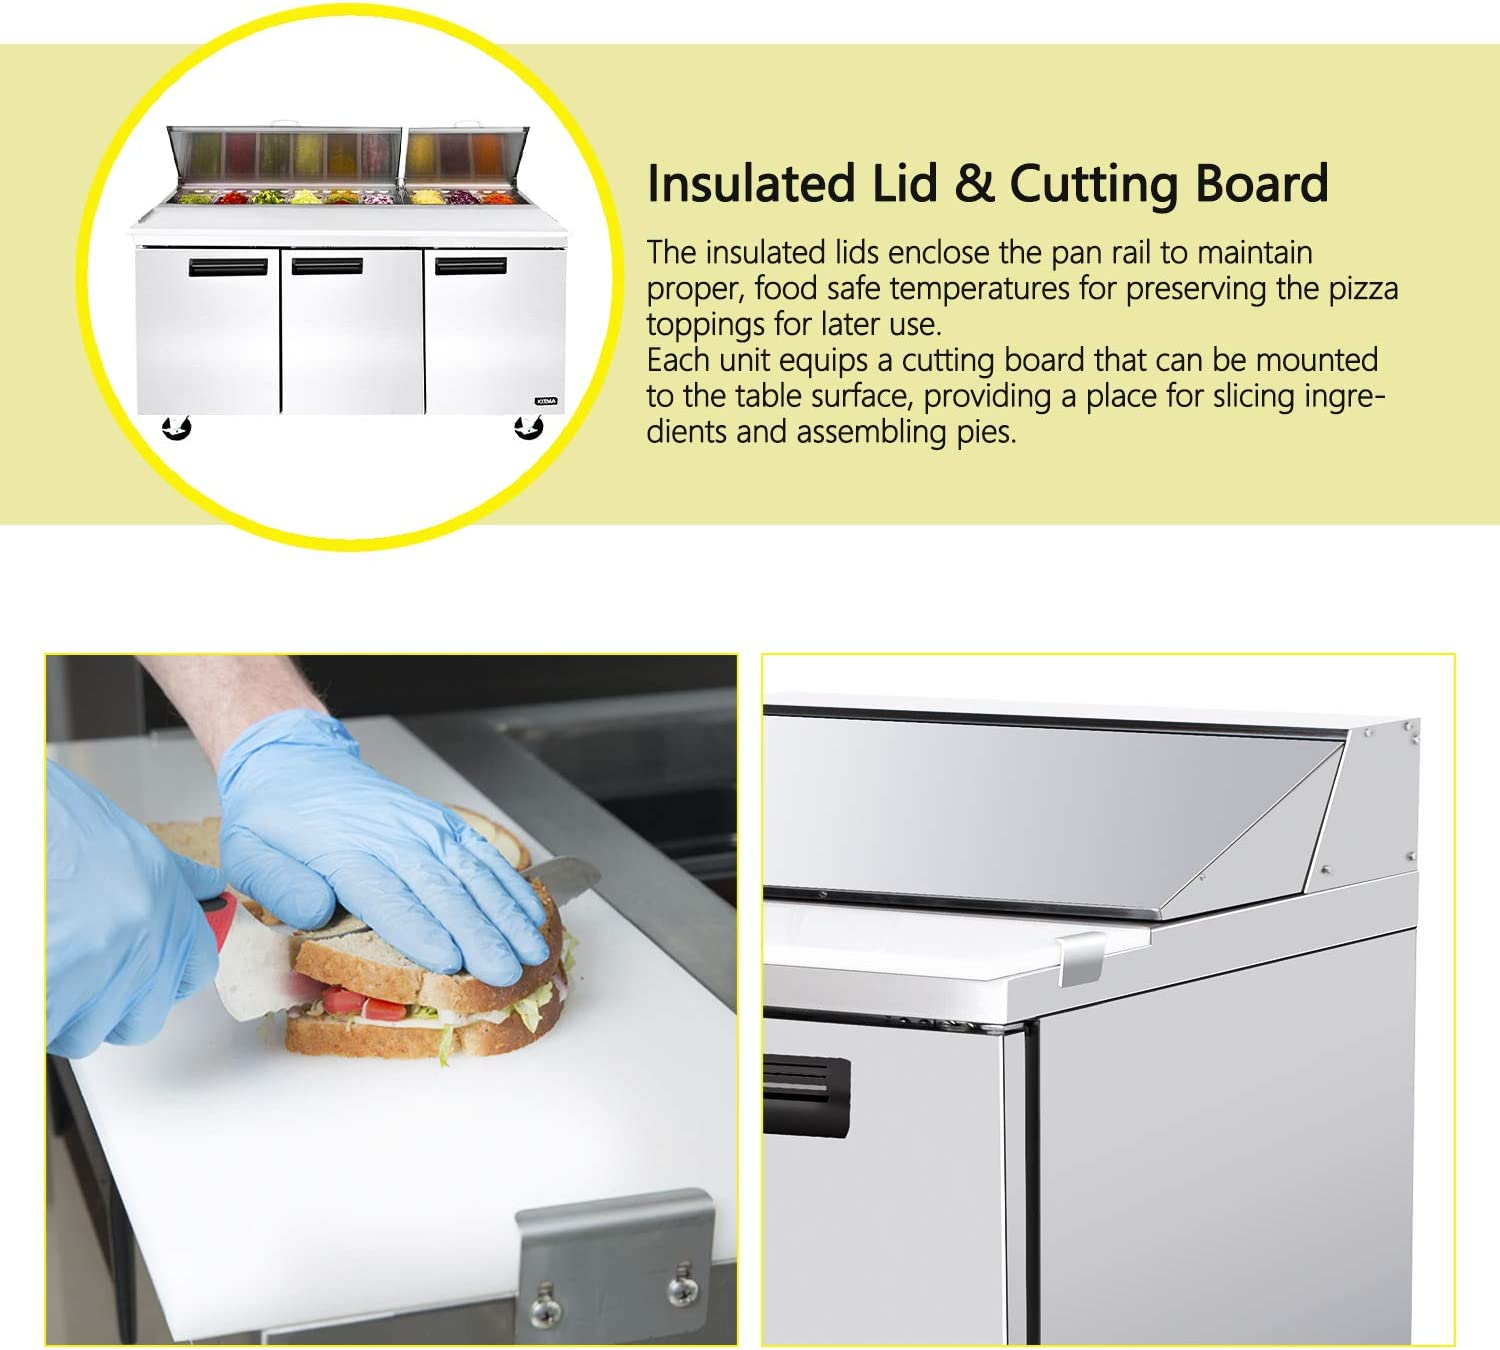 72 Inches Sandwich Salad Prep Table Refrigerator - KITMA 32.8 Cu. Ft 3 Door Food Prep Station Table with Cutting Board and 18 Pans, 33 °F - 38°F 71p8S3zyEfL